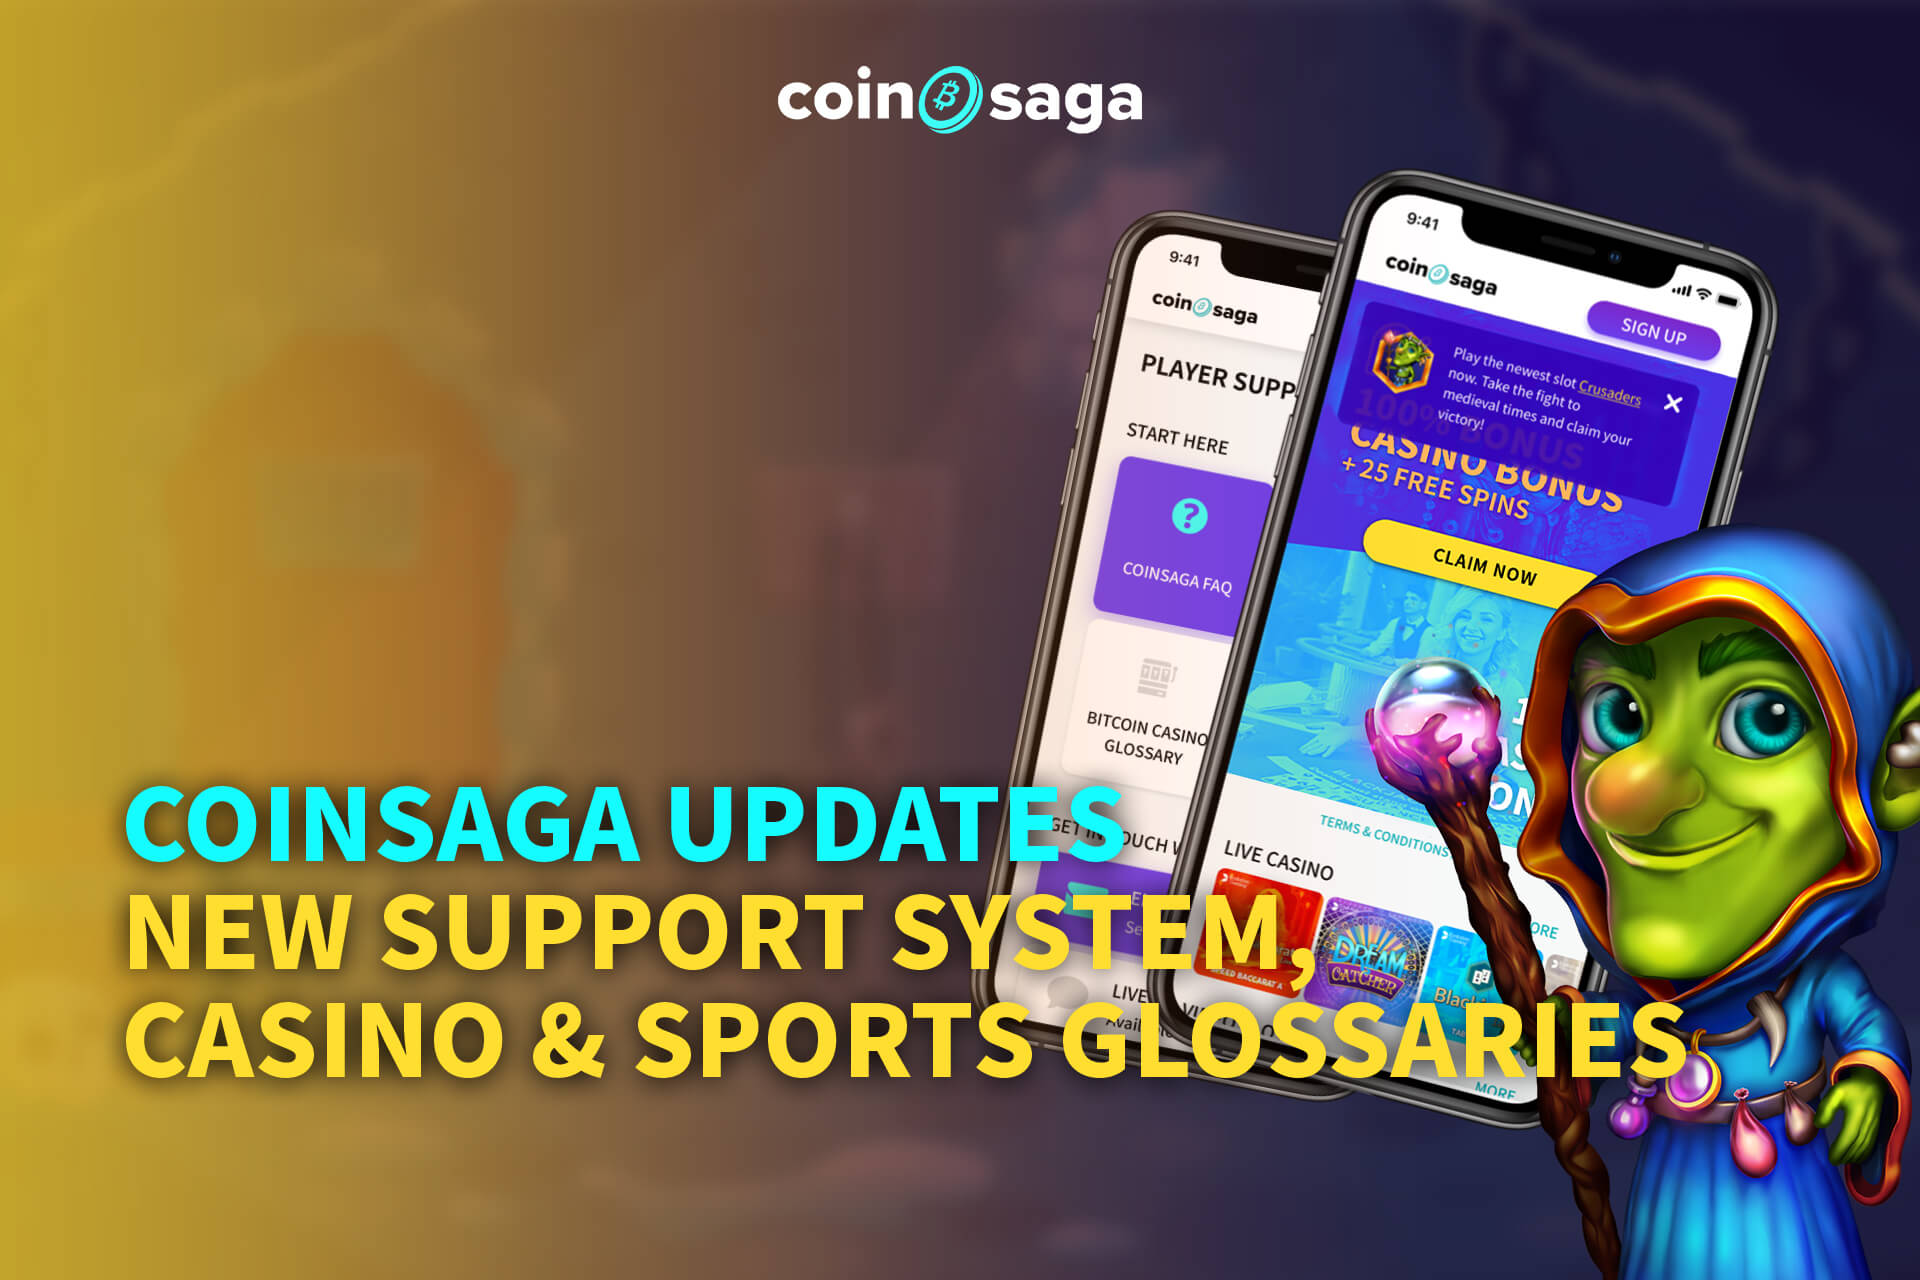 Coinsaga Updates - New Support System, Casino & Sports Glossaries